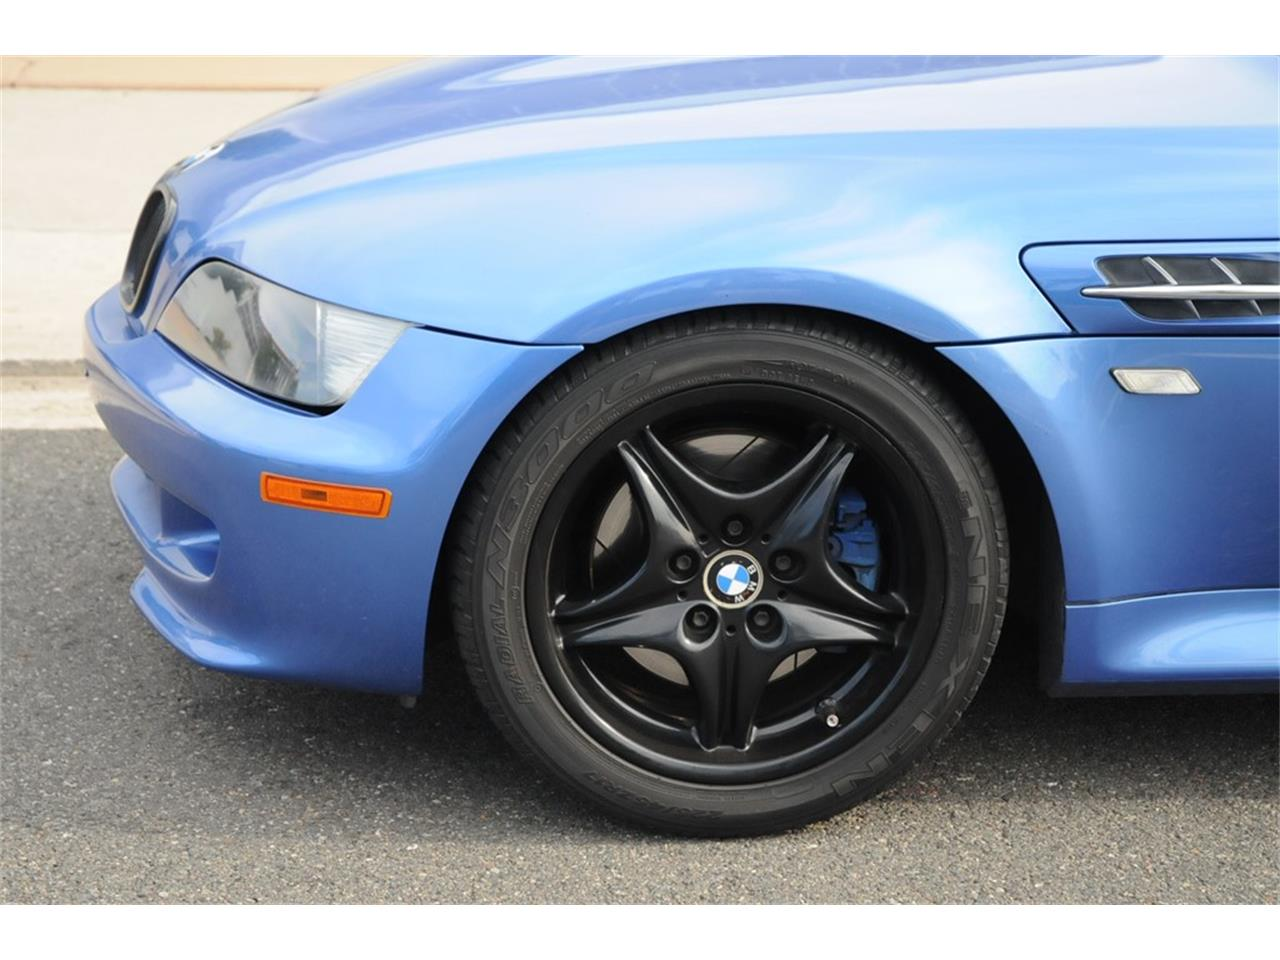 Large Picture of '00 BMW M Coupe located in California - $17,990.00 - P65V